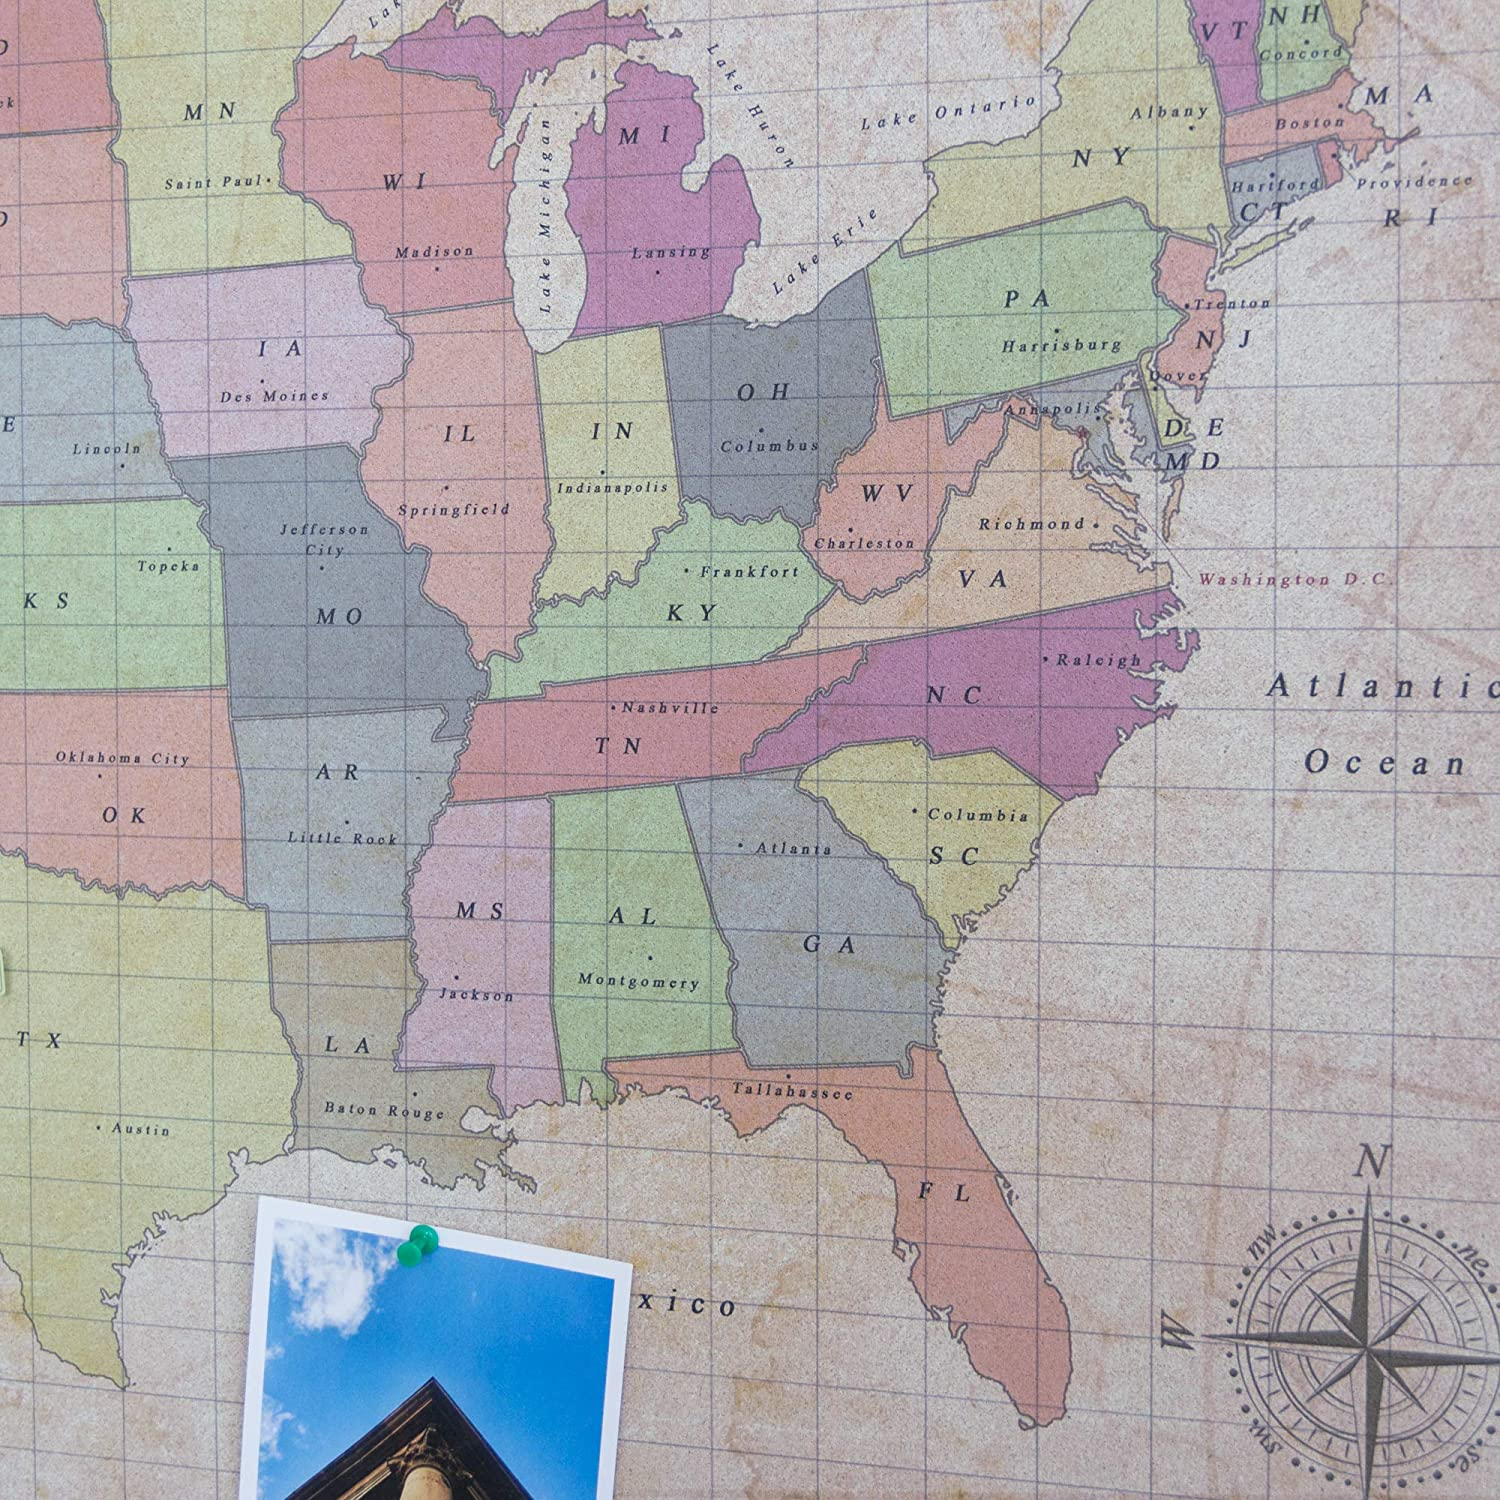 Maps Office Products State Flags And Travel Stickers Miss Wood Push Pin United States Travel Map Kit Includes Cork Us Map White 17 7 X 23 6 Inches For Travelers L